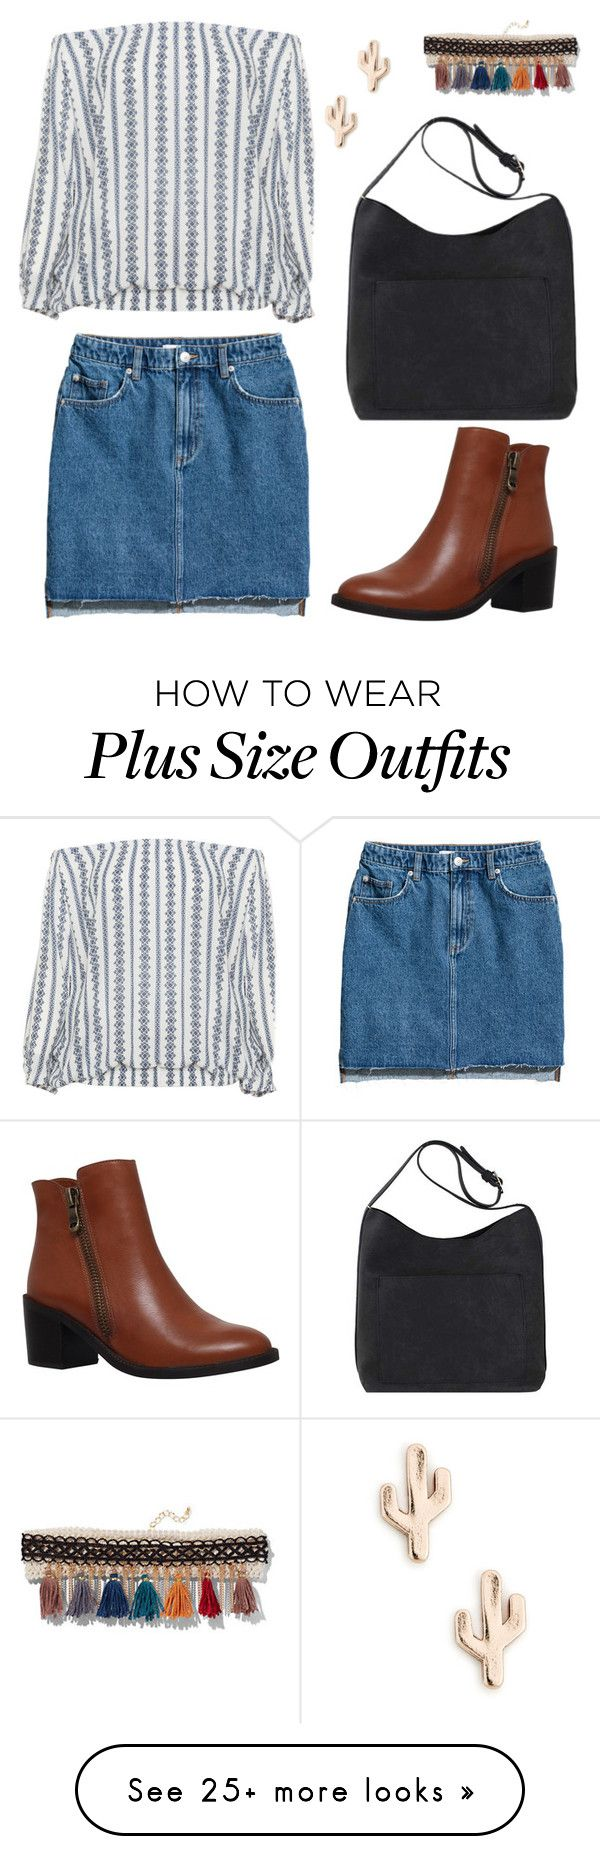 """chillyshoulder"" by anais-rose on Polyvore featuring Zizzi, New York & Company, Carvela and Sole Society"